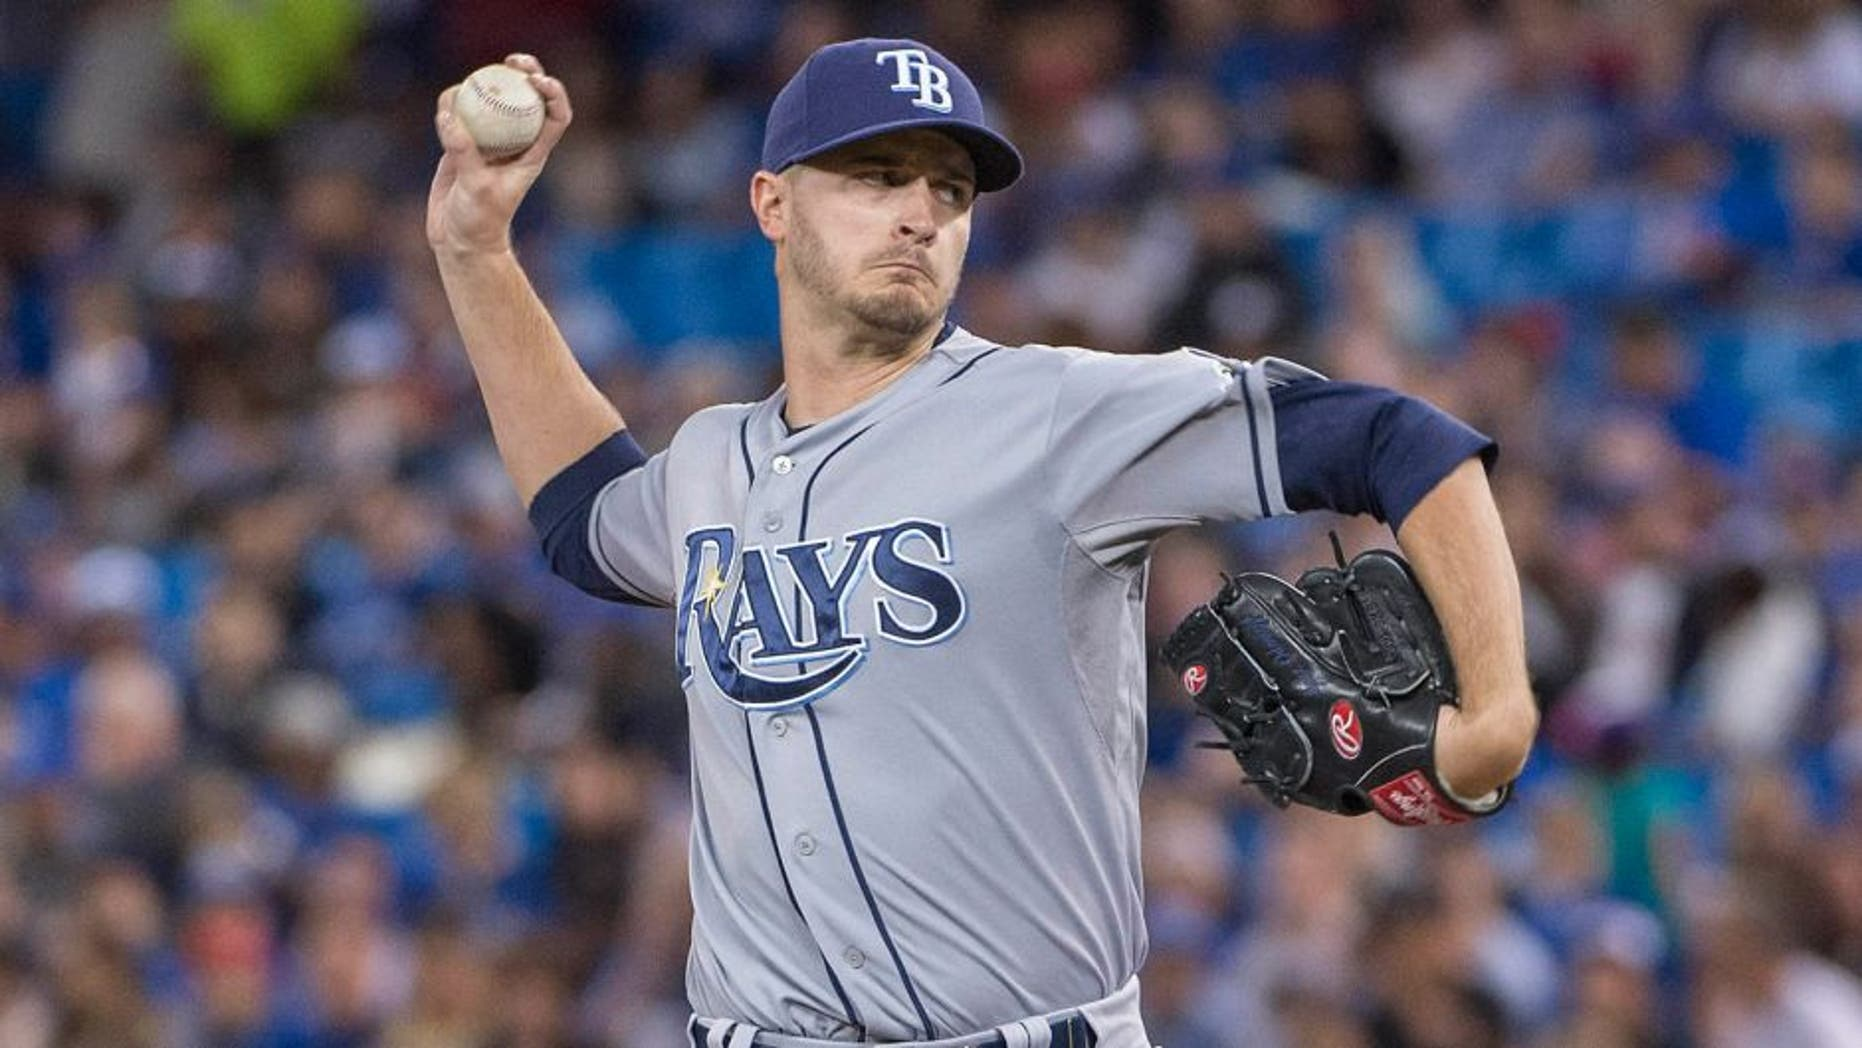 Sep 25, 2015; Toronto, Ontario, CAN; Tampa Bay Rays starting pitcher Jake Odorizzi (23) throws a pitch during the first inning in a game against the Toronto Blue Jays at Rogers Centre. Mandatory Credit: Nick Turchiaro-USA TODAY Sports